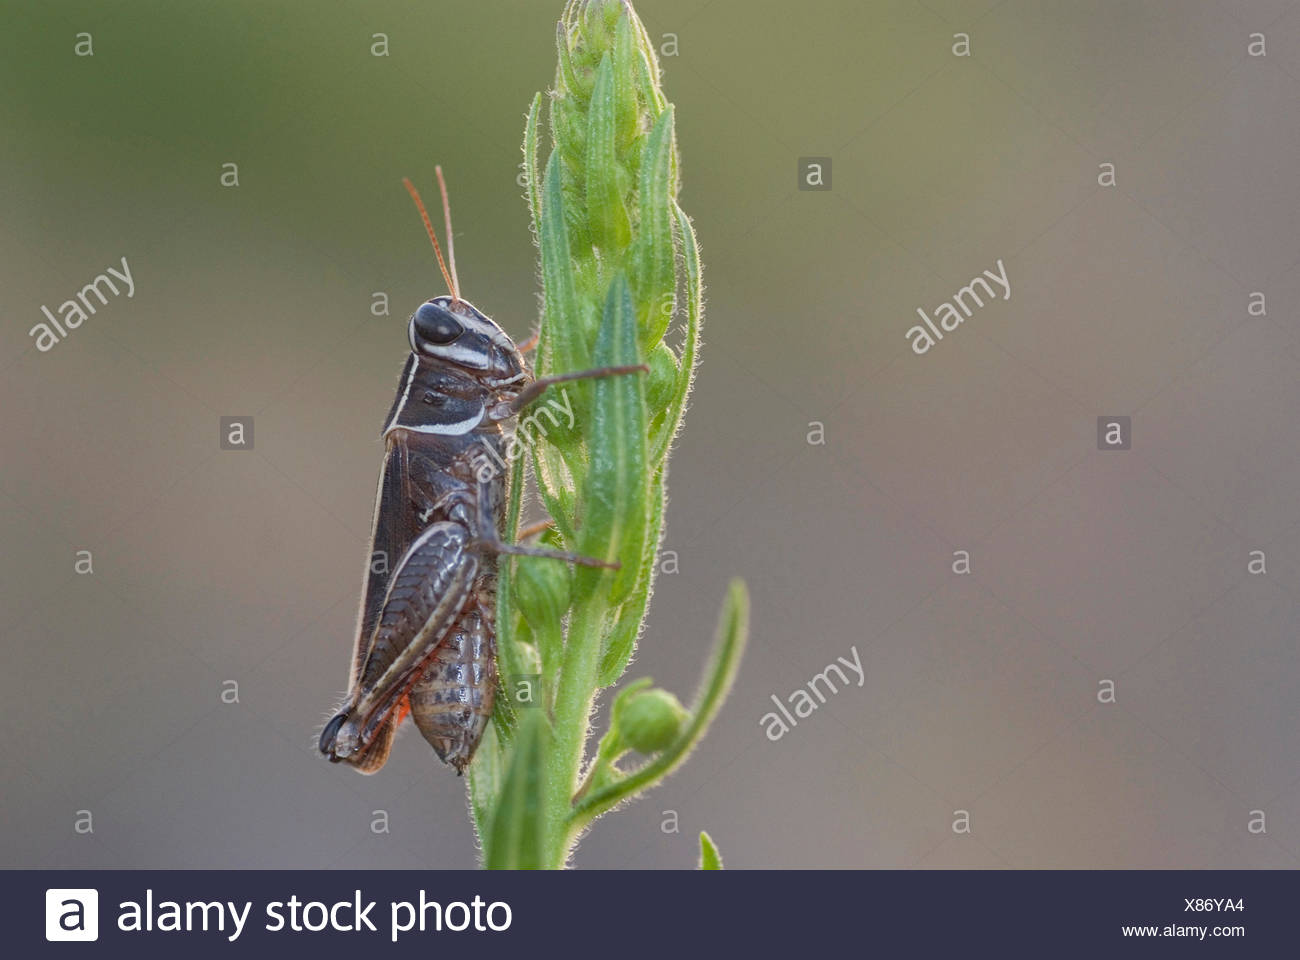 Locust (Calliptamus spec,), on a budding inflorescence, France, Corsica - Stock Image